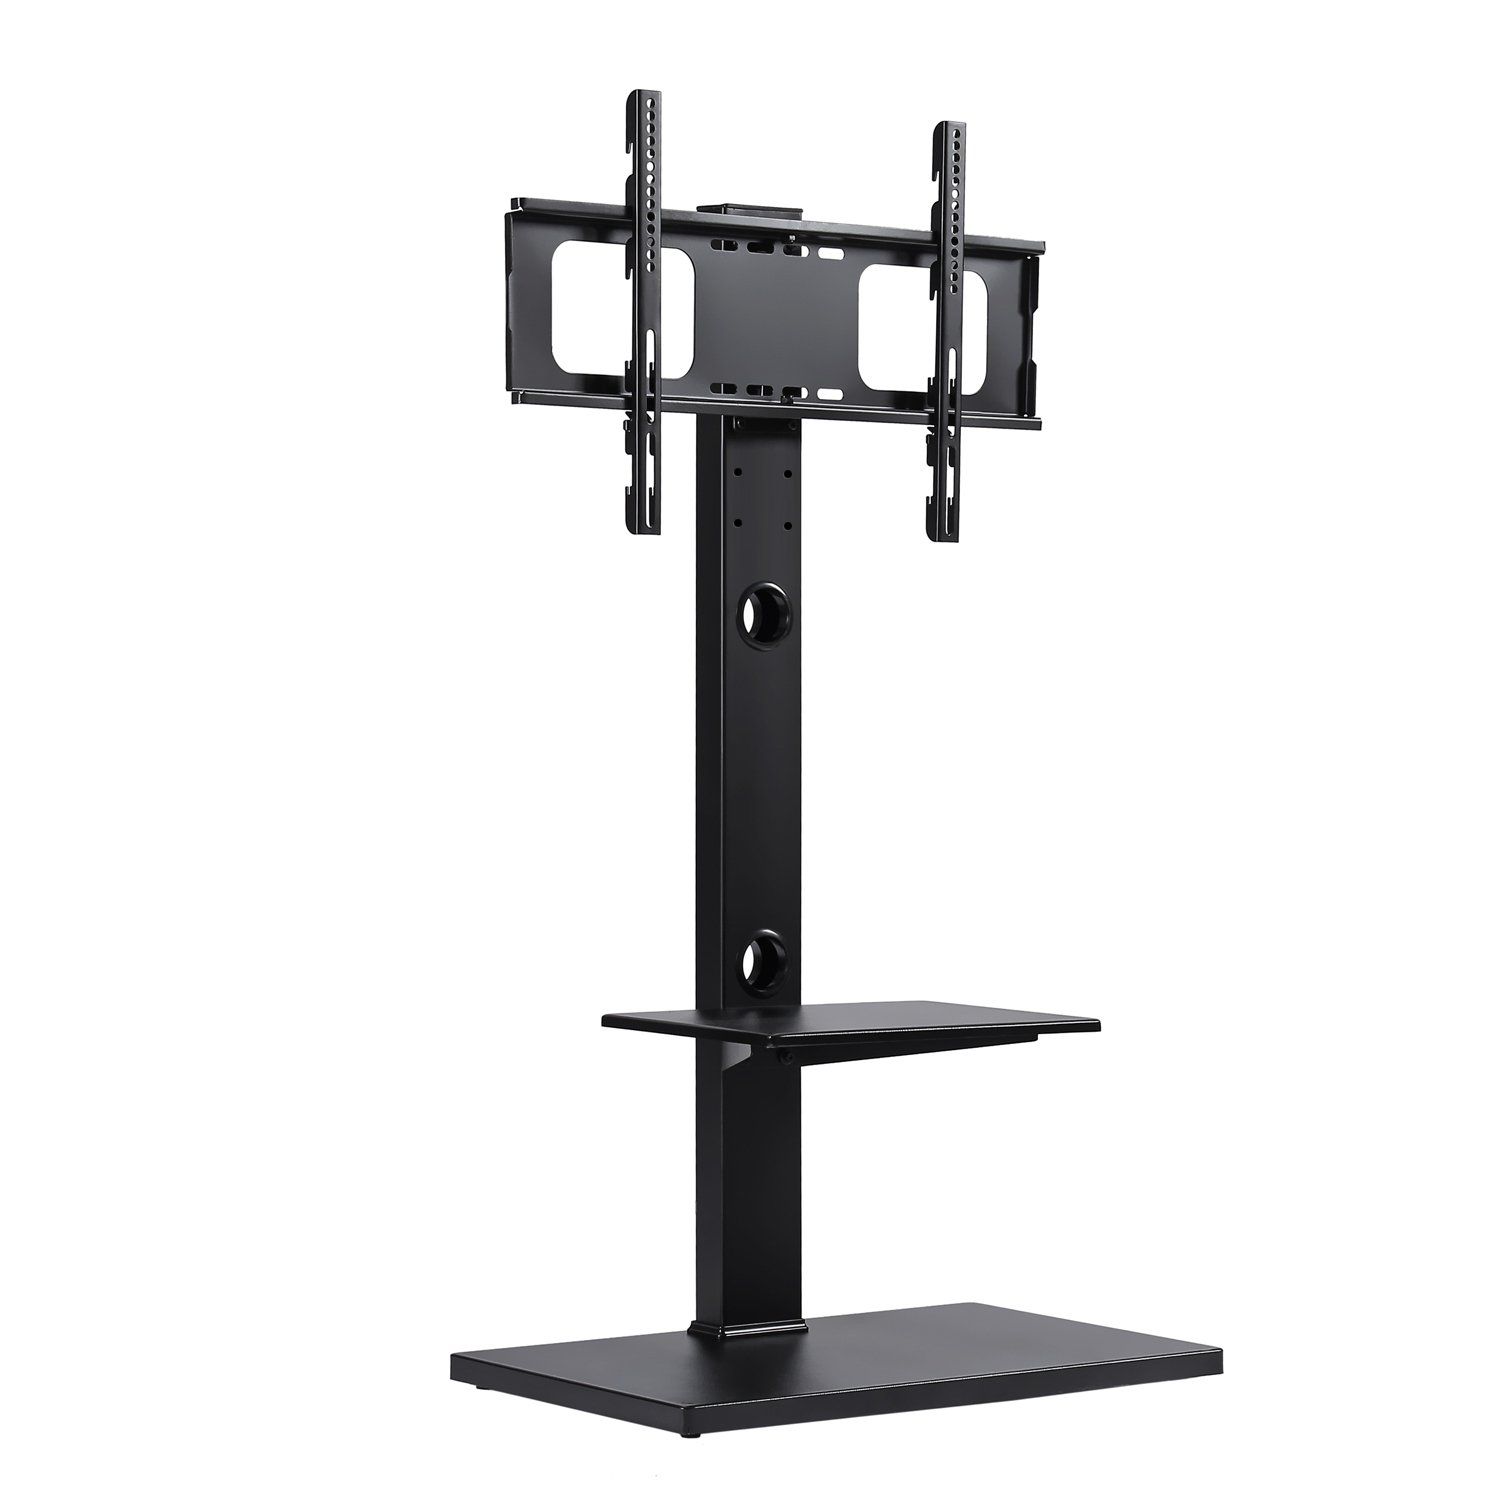 Rfiver Swivel Floor TV Stand with Mount and Two Shelves for 32 to 65 Inches Plasma/LCD/LED TVs, Black TF1001